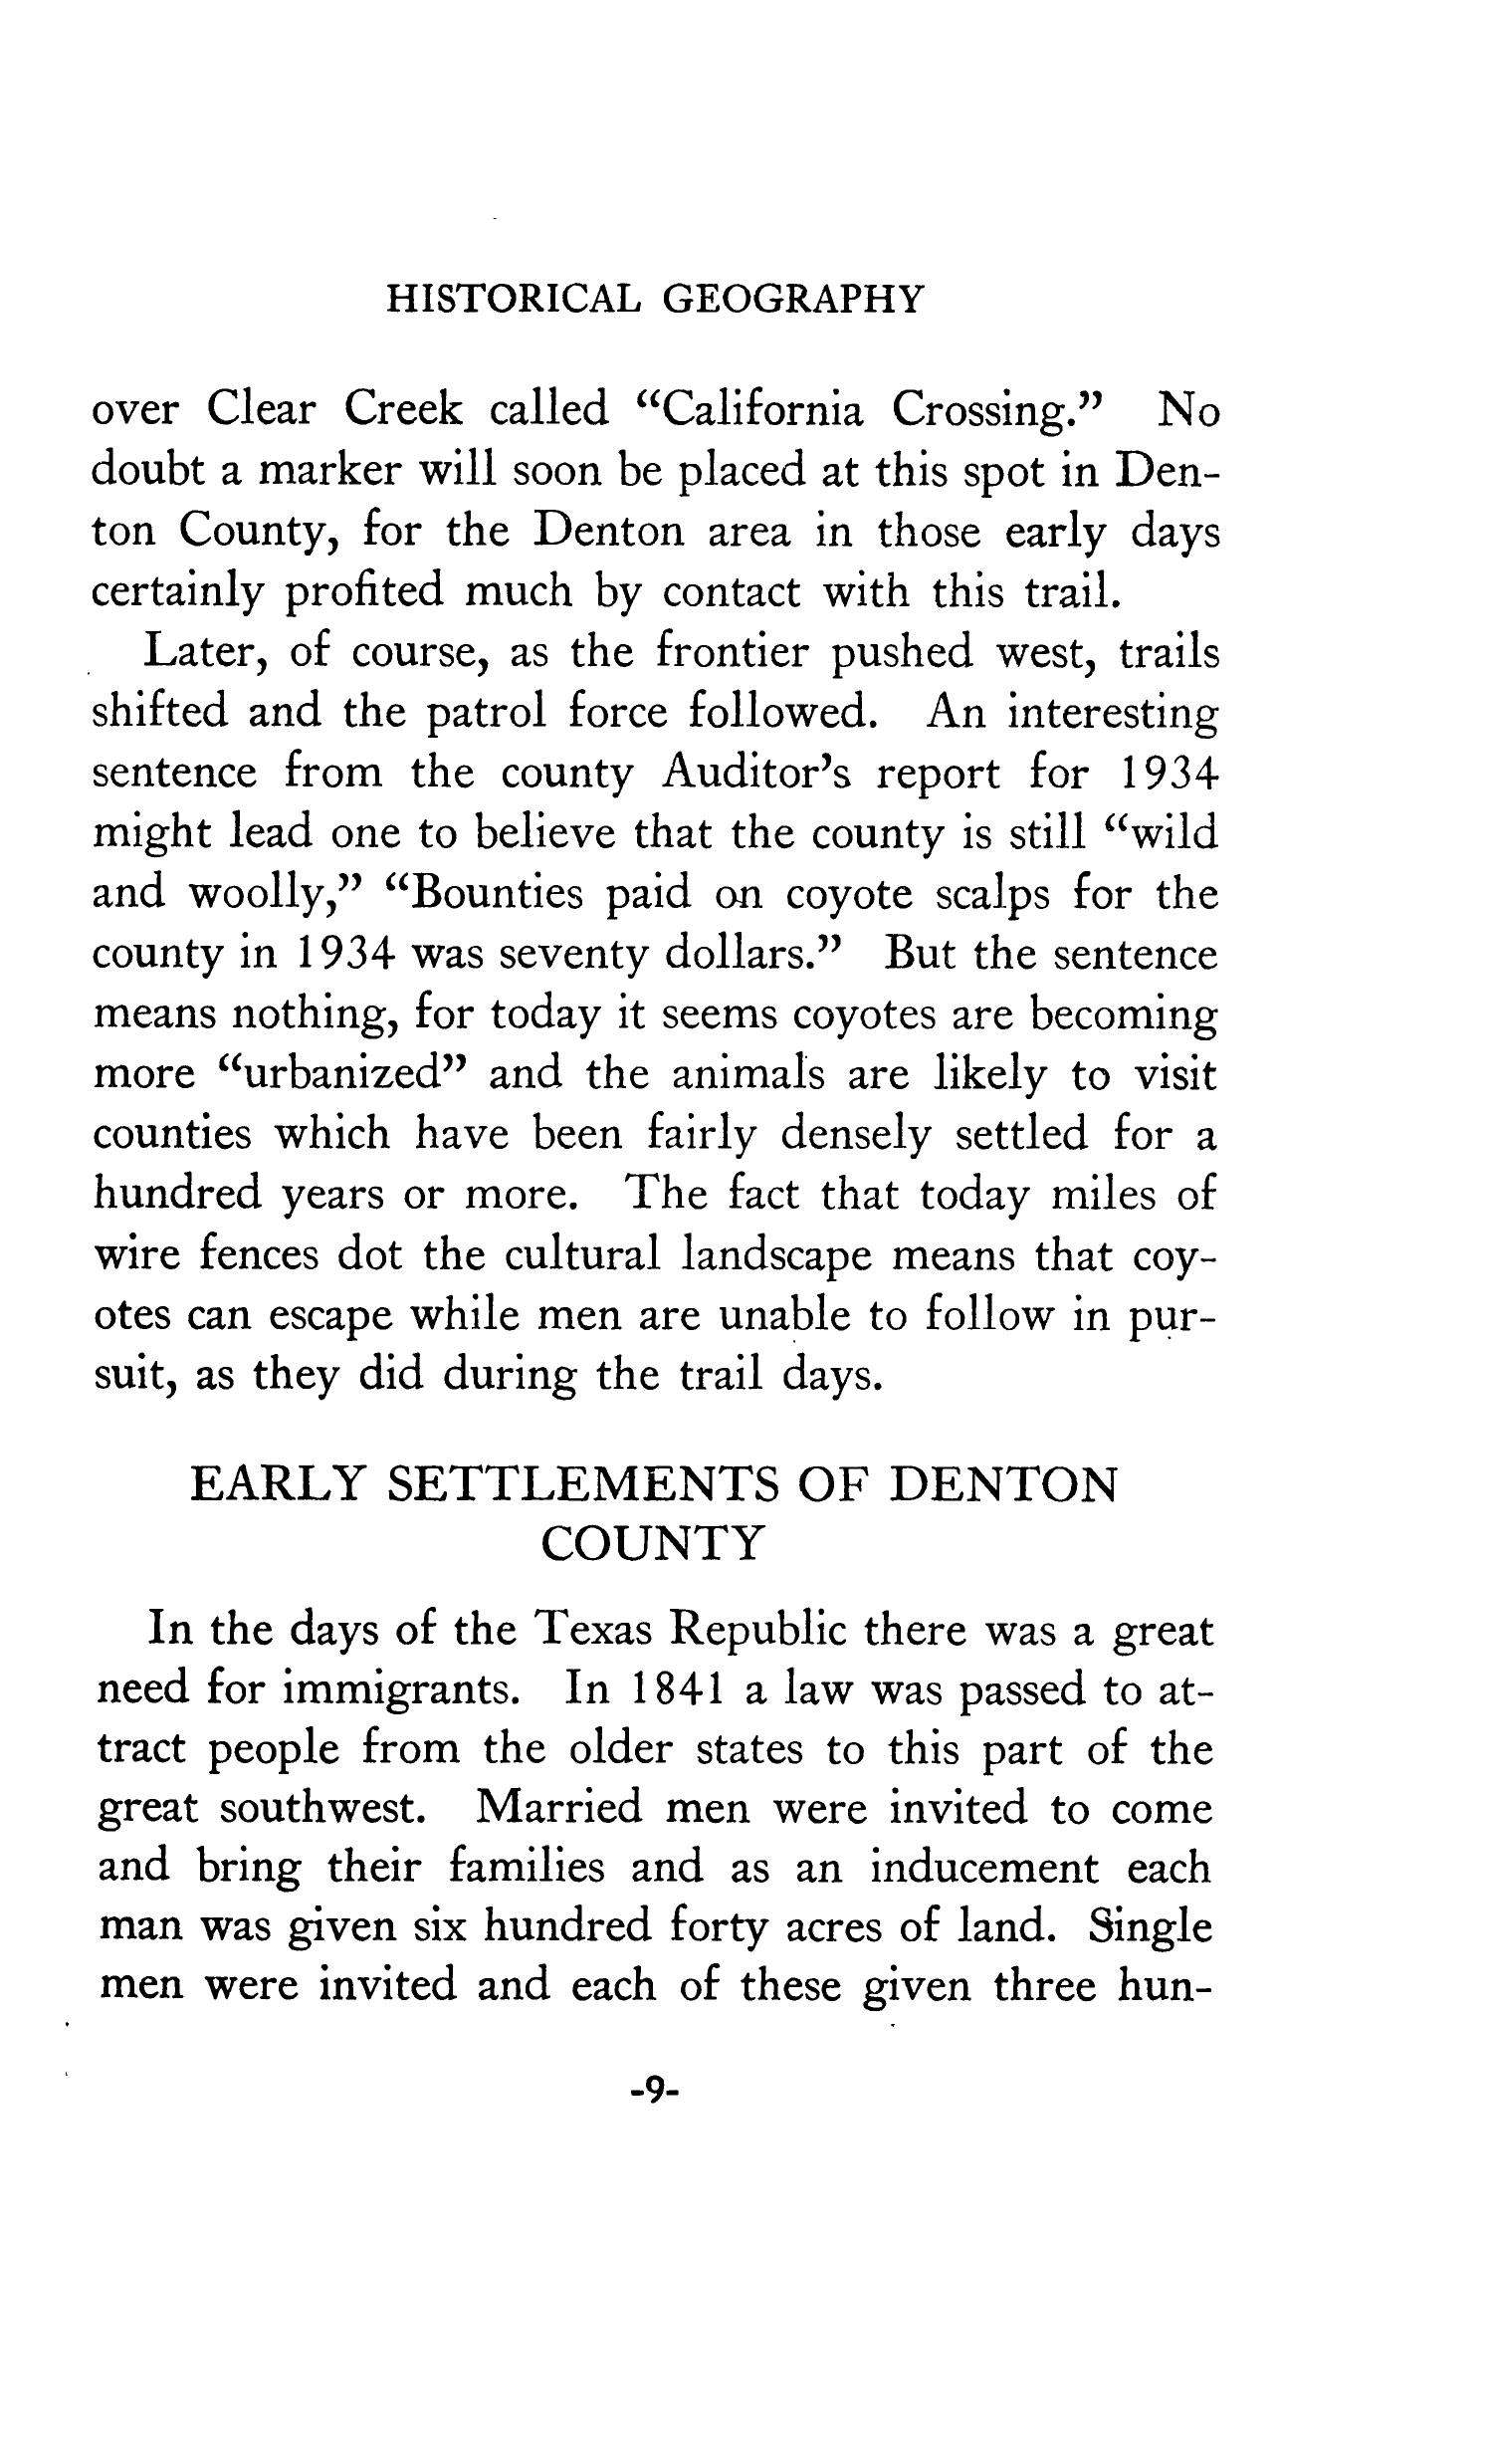 Geography of Denton County                                                                                                      9